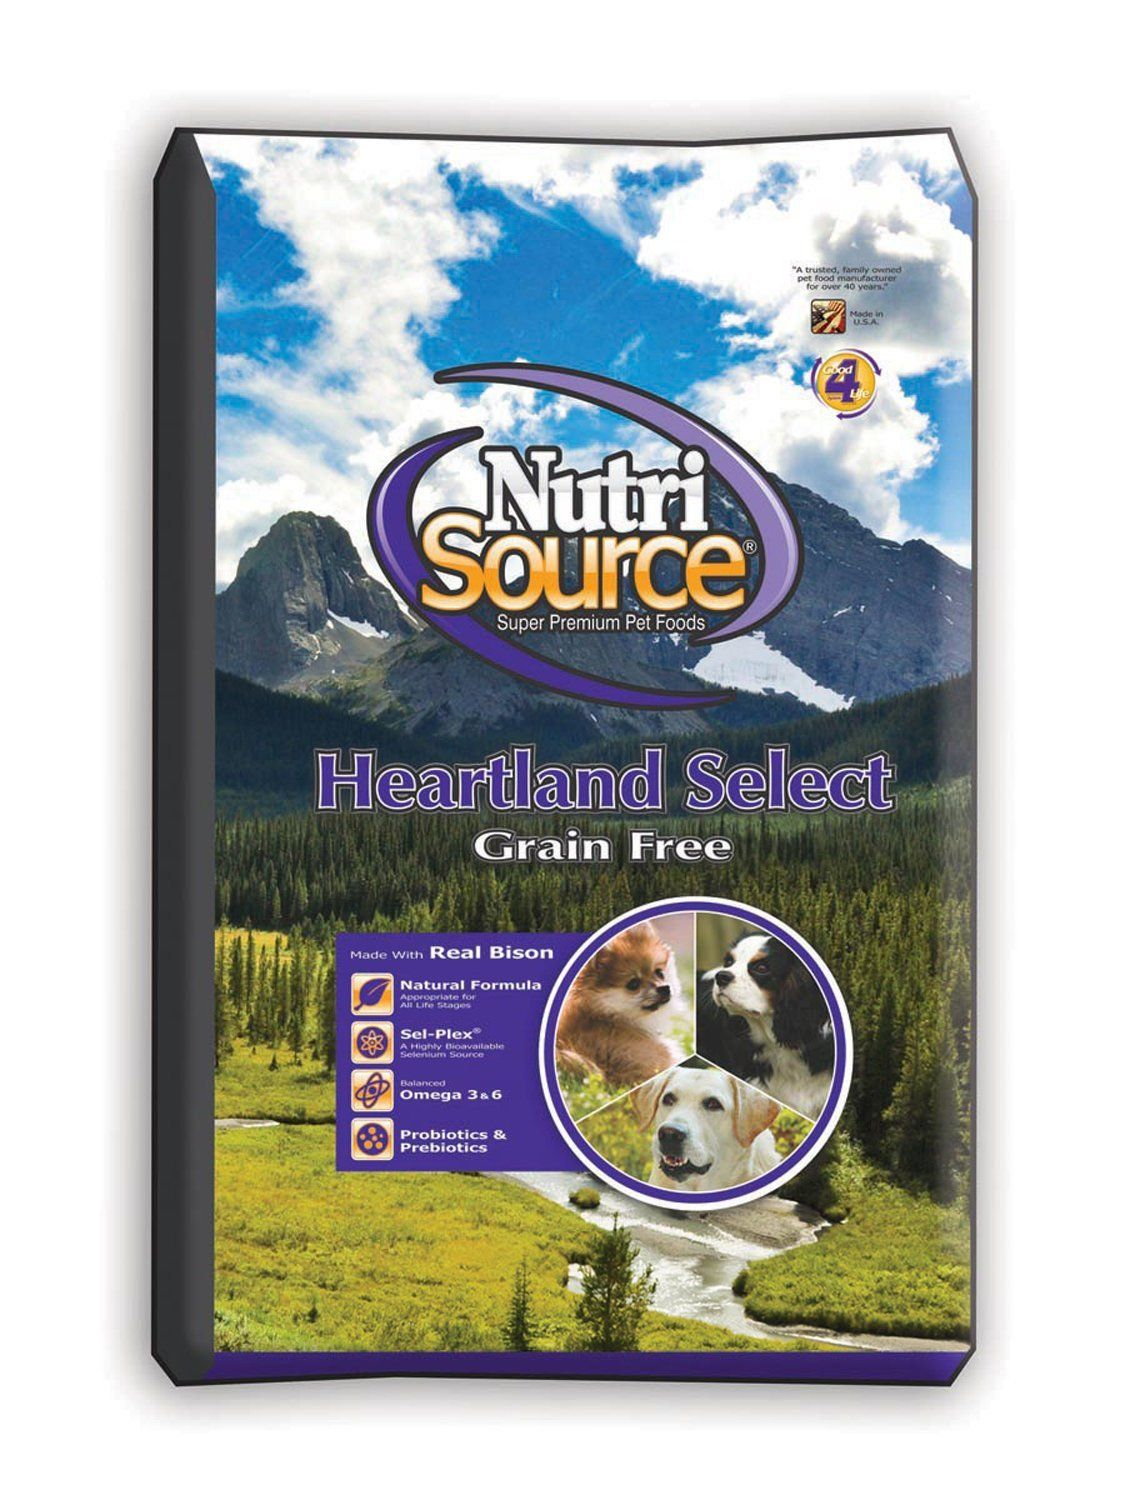 Nutri Source Grain Free Heartland Select >>> New and